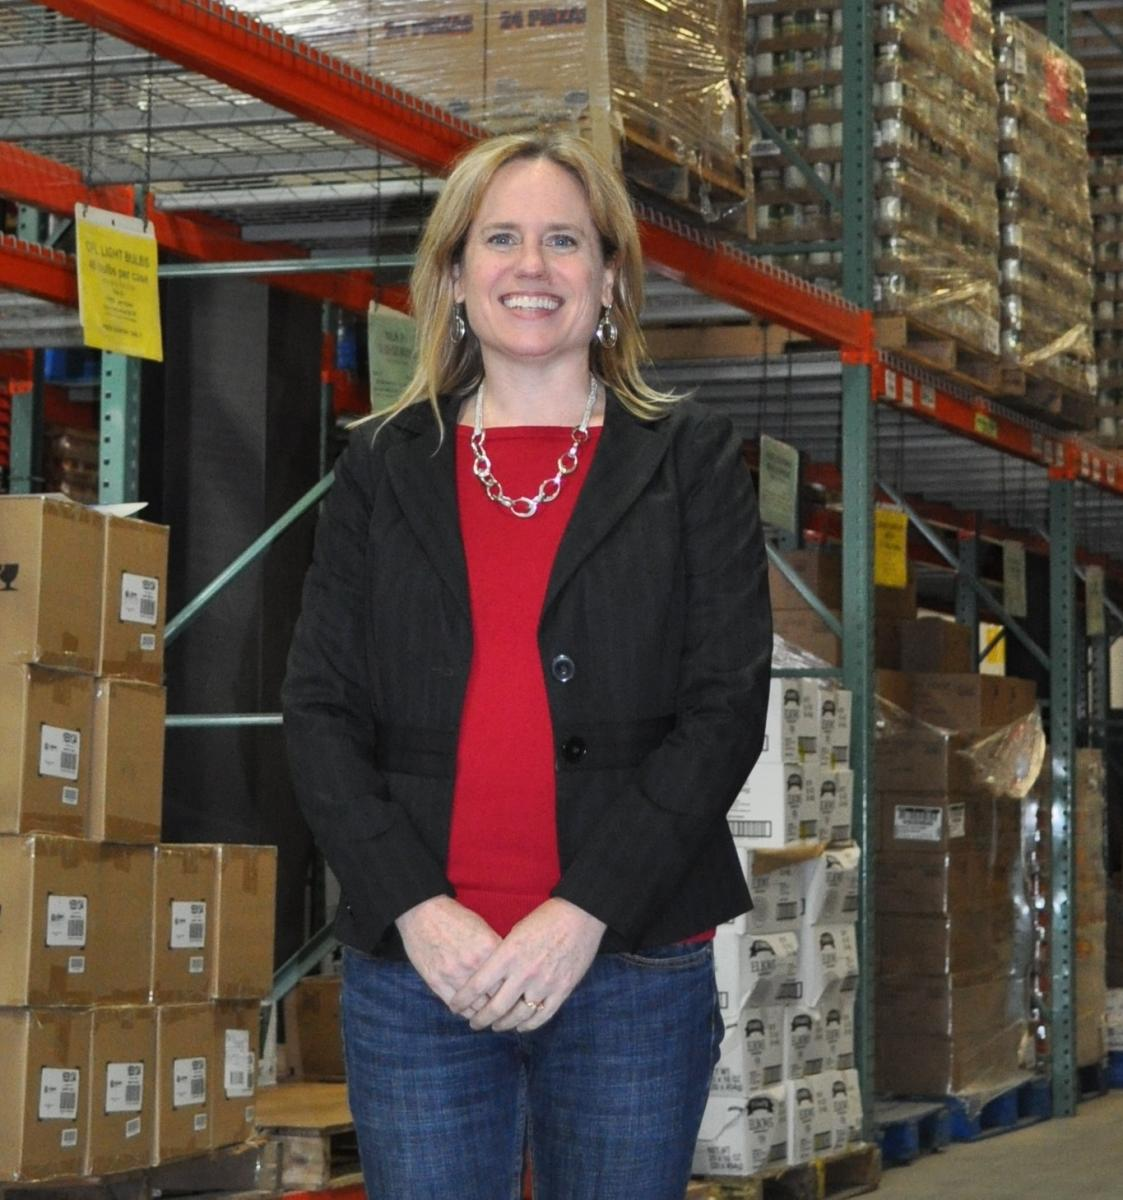 Kristen Miale at the Good Shepherd Food Bank Warehouse